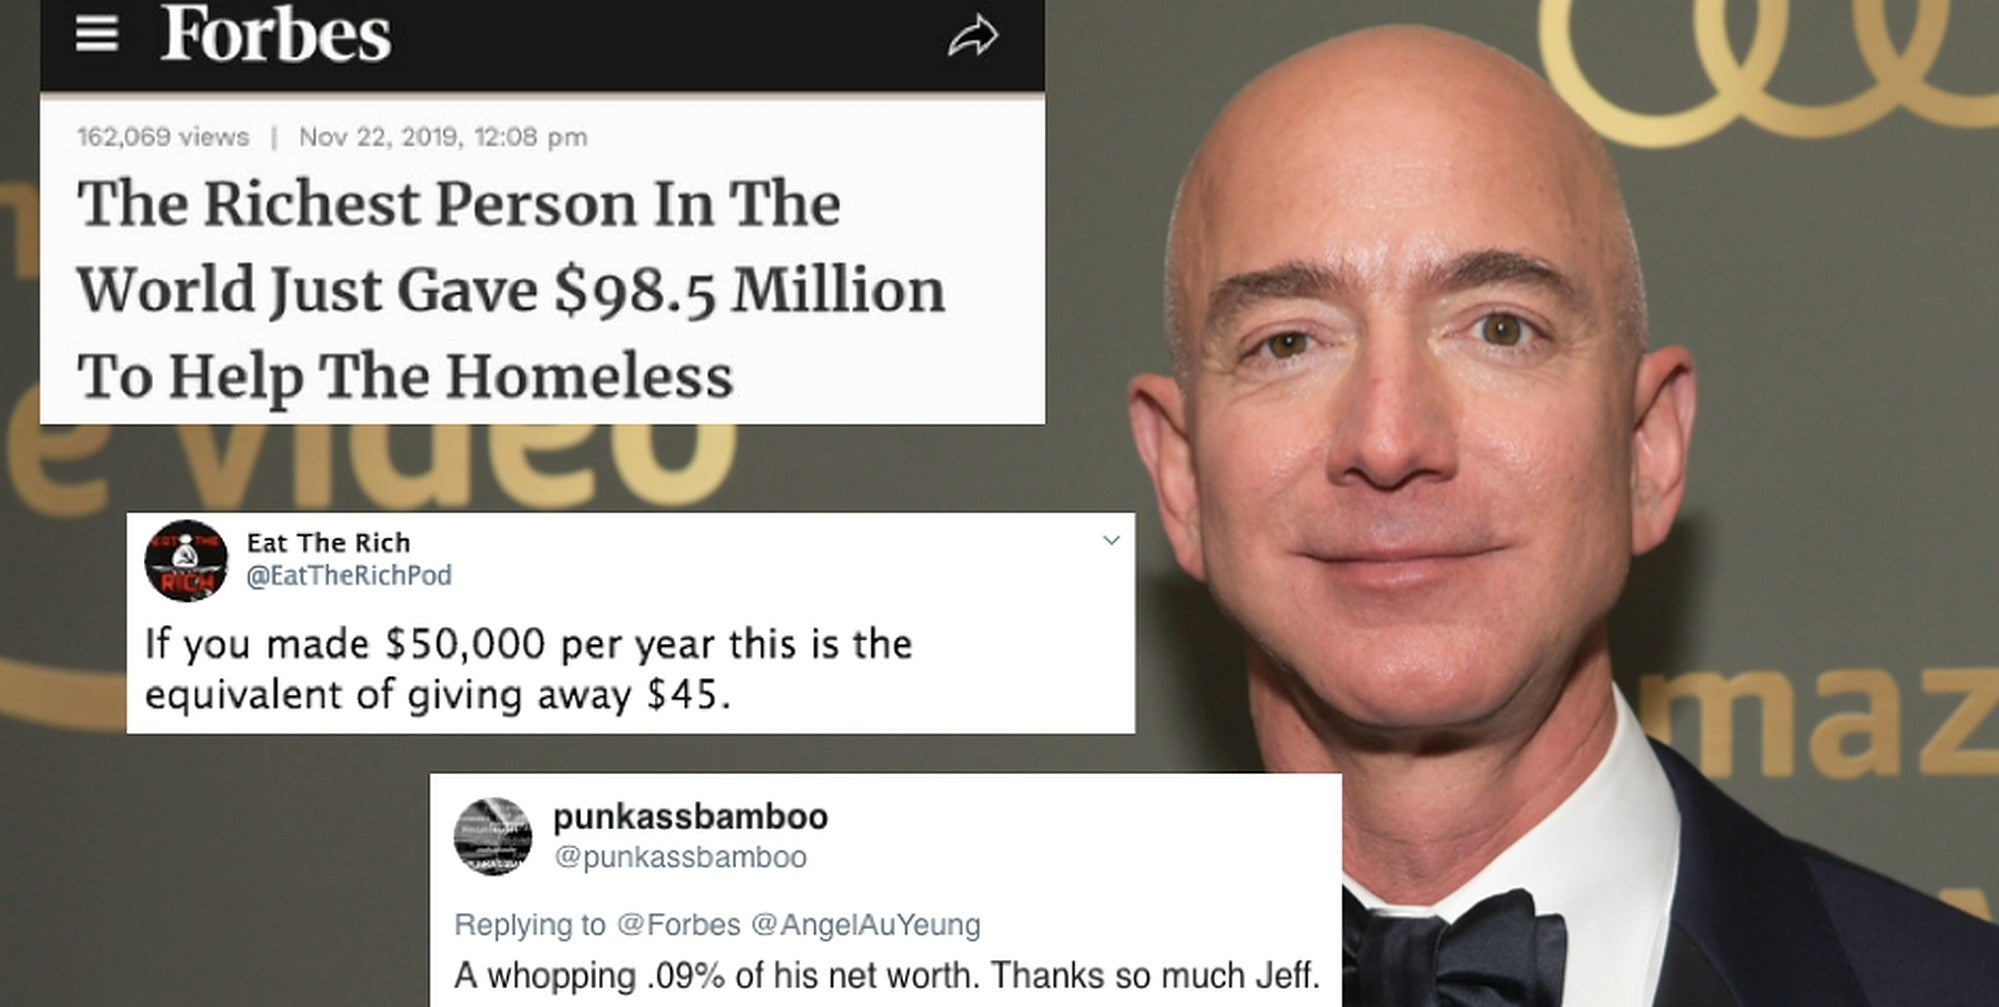 Jeff Bezos The Internet Is Divided Over Amazon